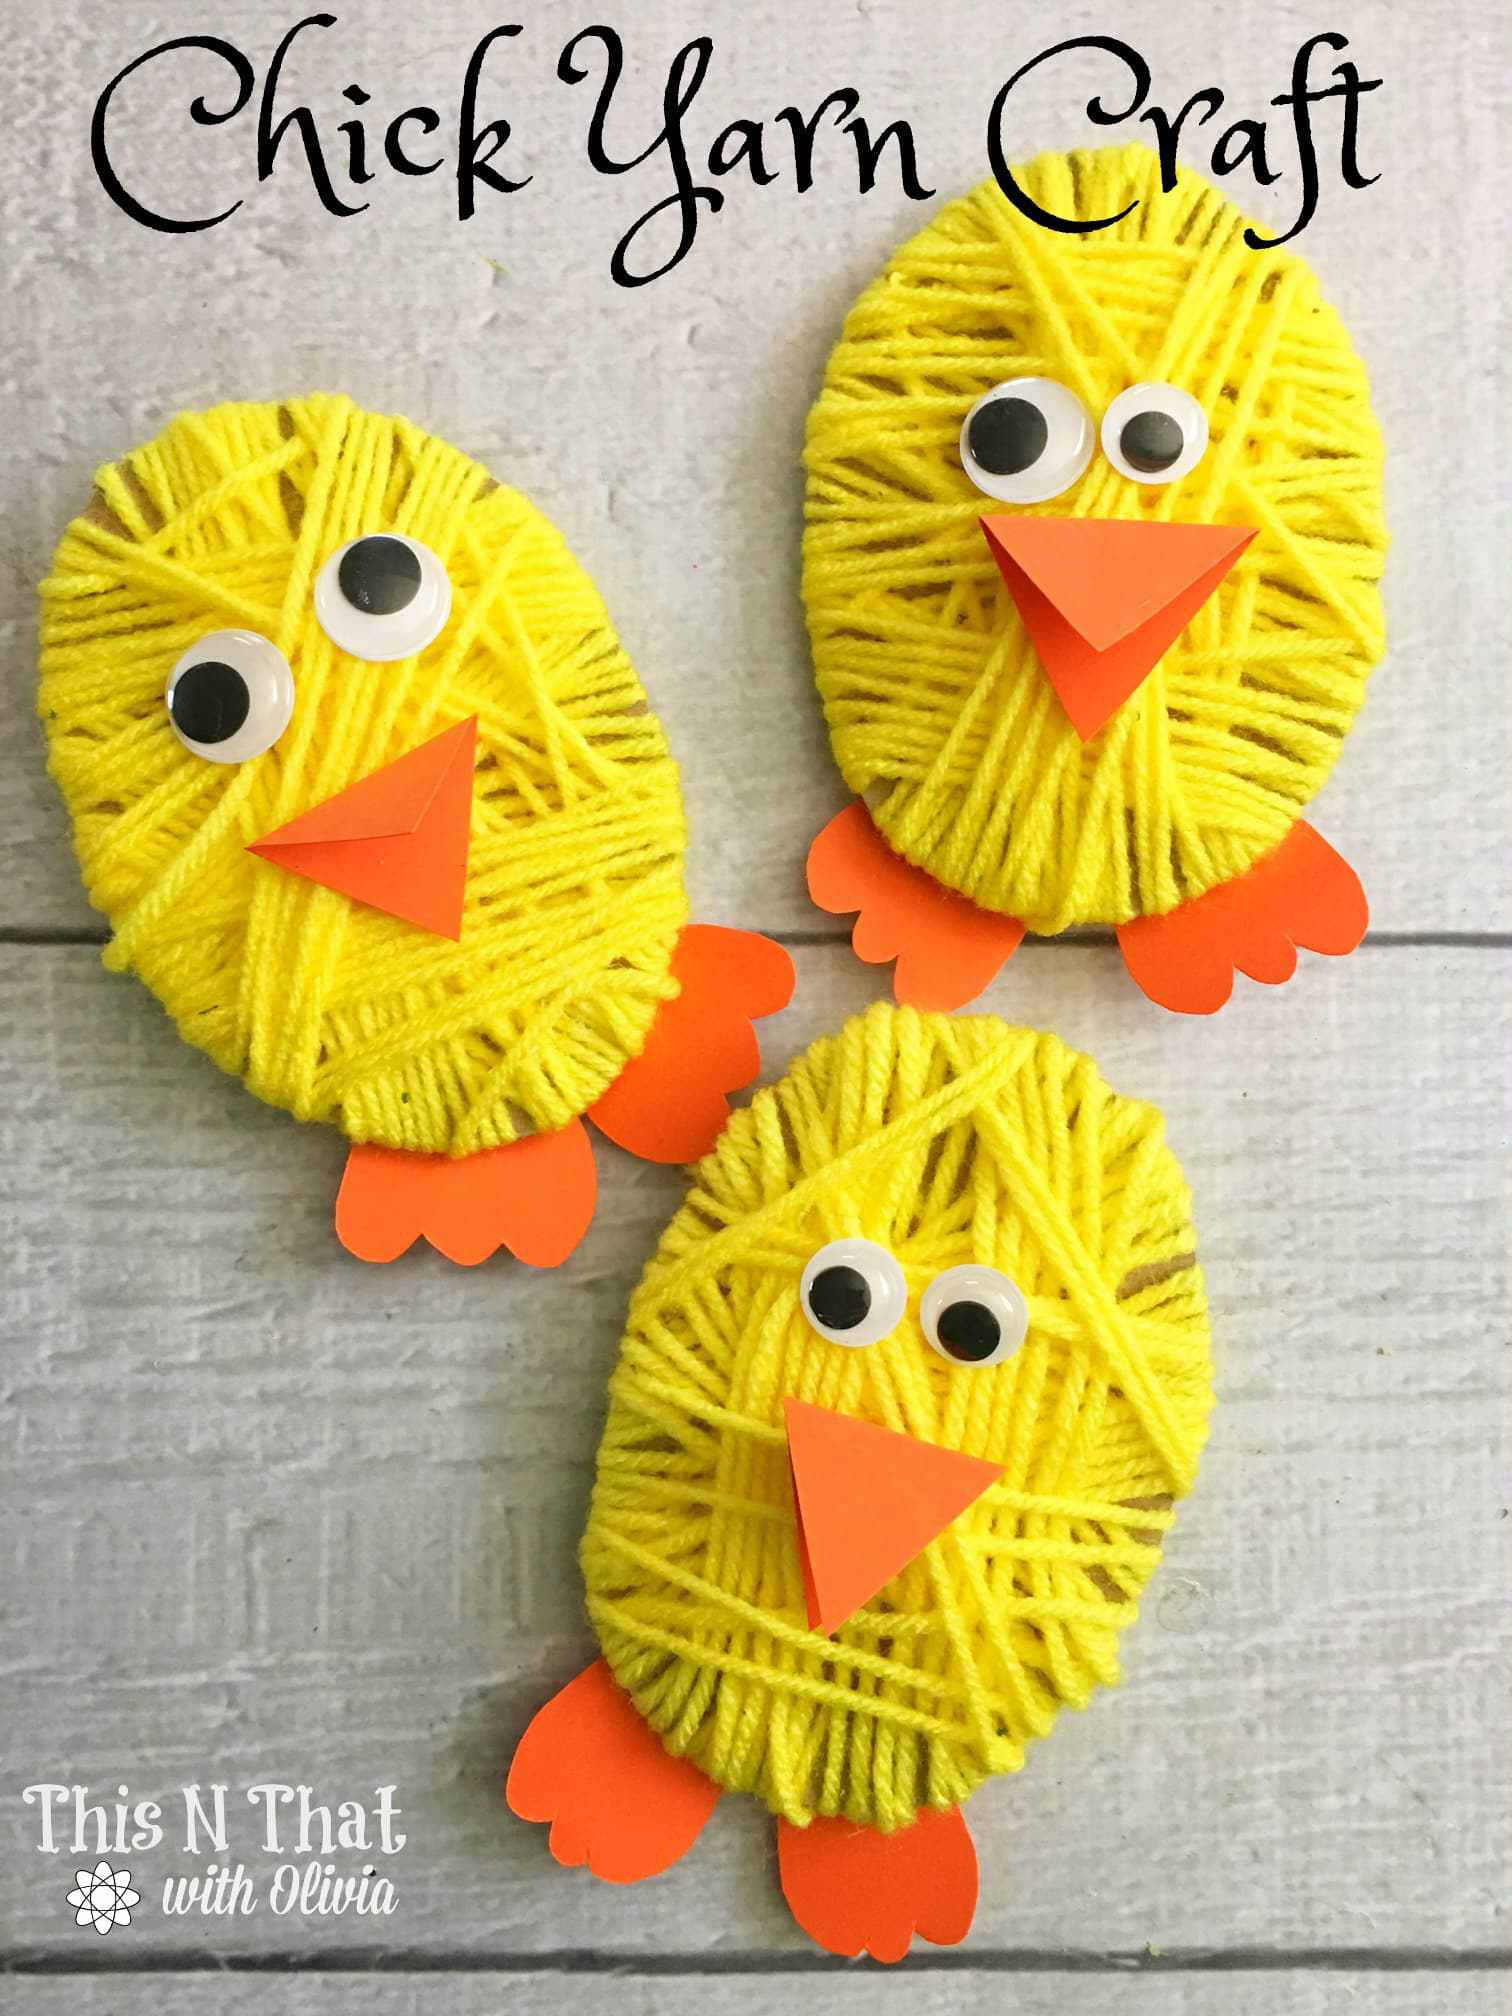 Crafts Ideas For Kids  Over 33 Easter Craft Ideas for Kids to Make Simple Cute